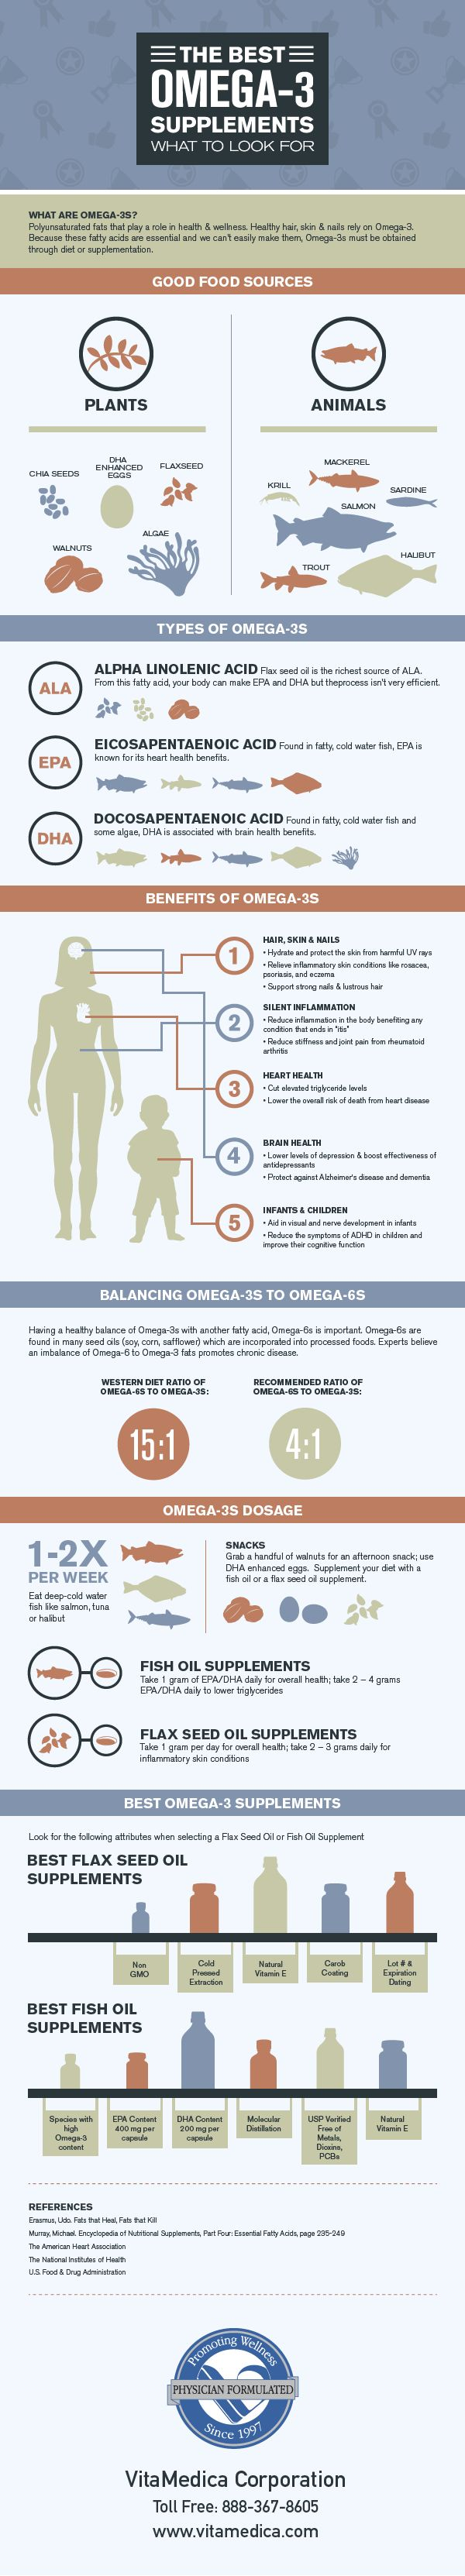 Best Omega-3 Supplements – What to Look For (INFOGRAPHIC) Have you heard about…